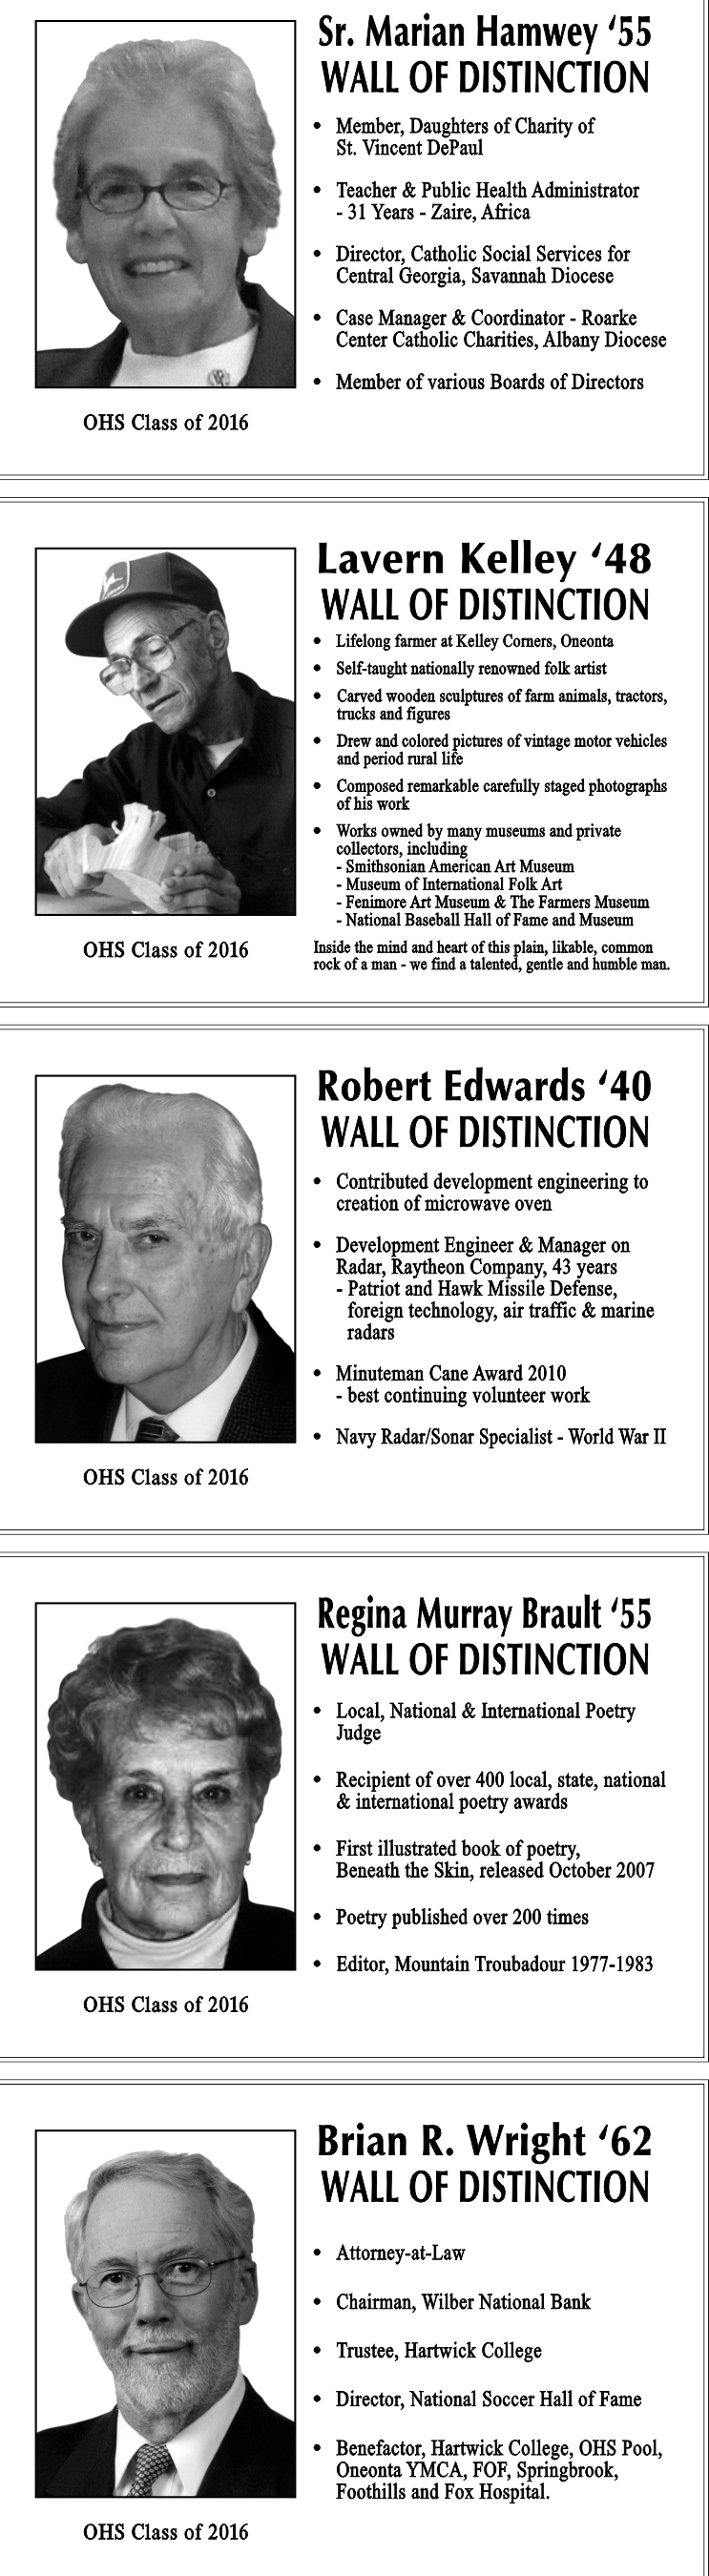 2016 Wall of Distinction